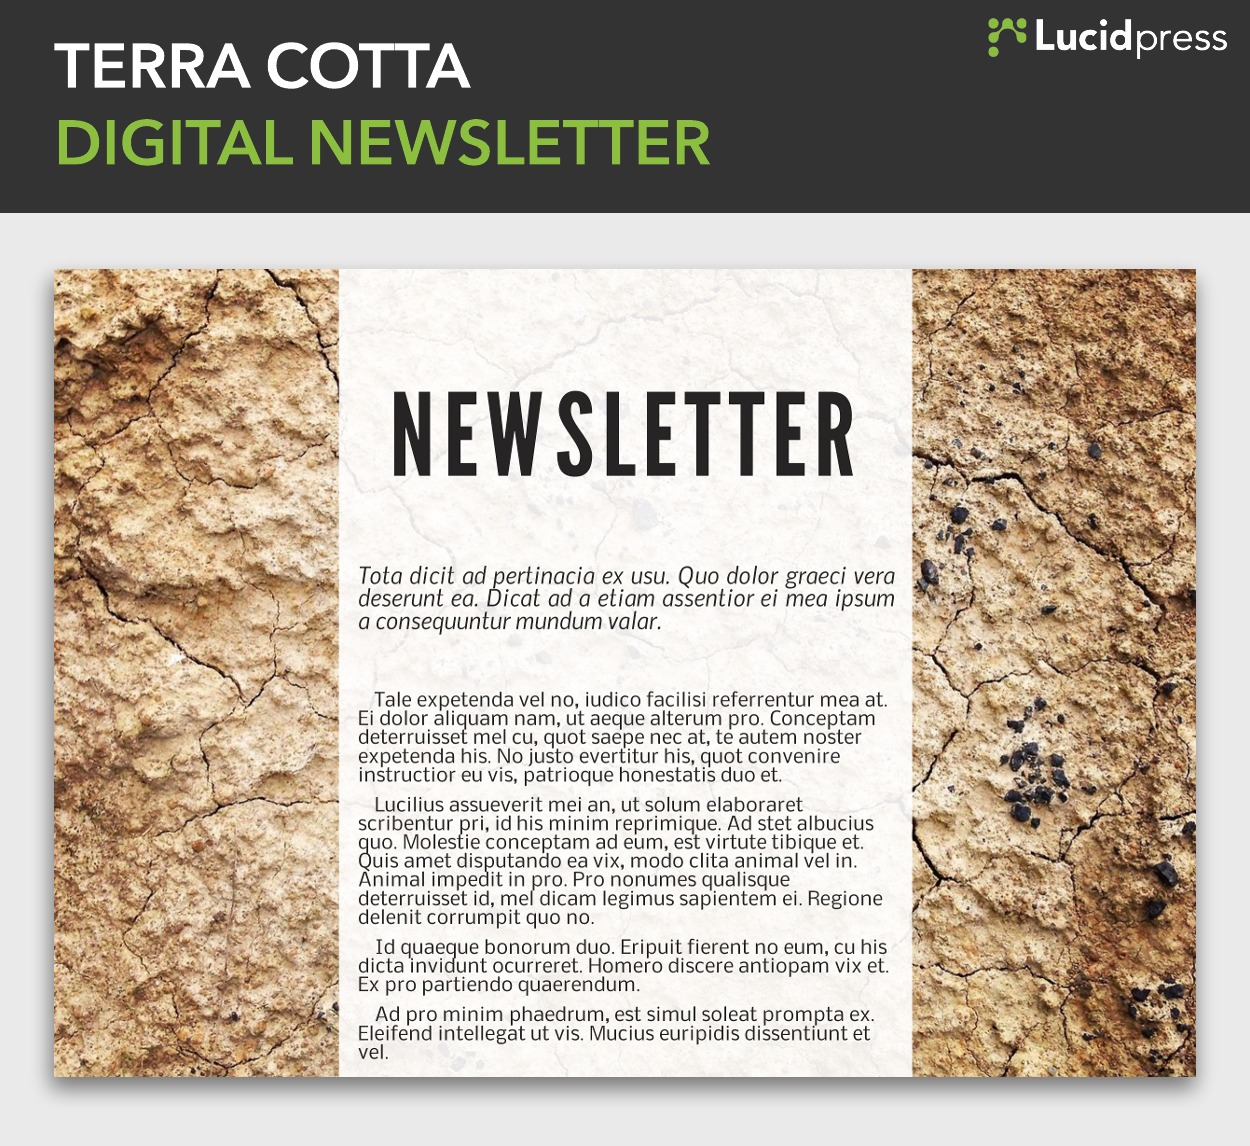 Best Newsletter Design Ideas To Inspire You Lucidpress - Free digital newsletter templates